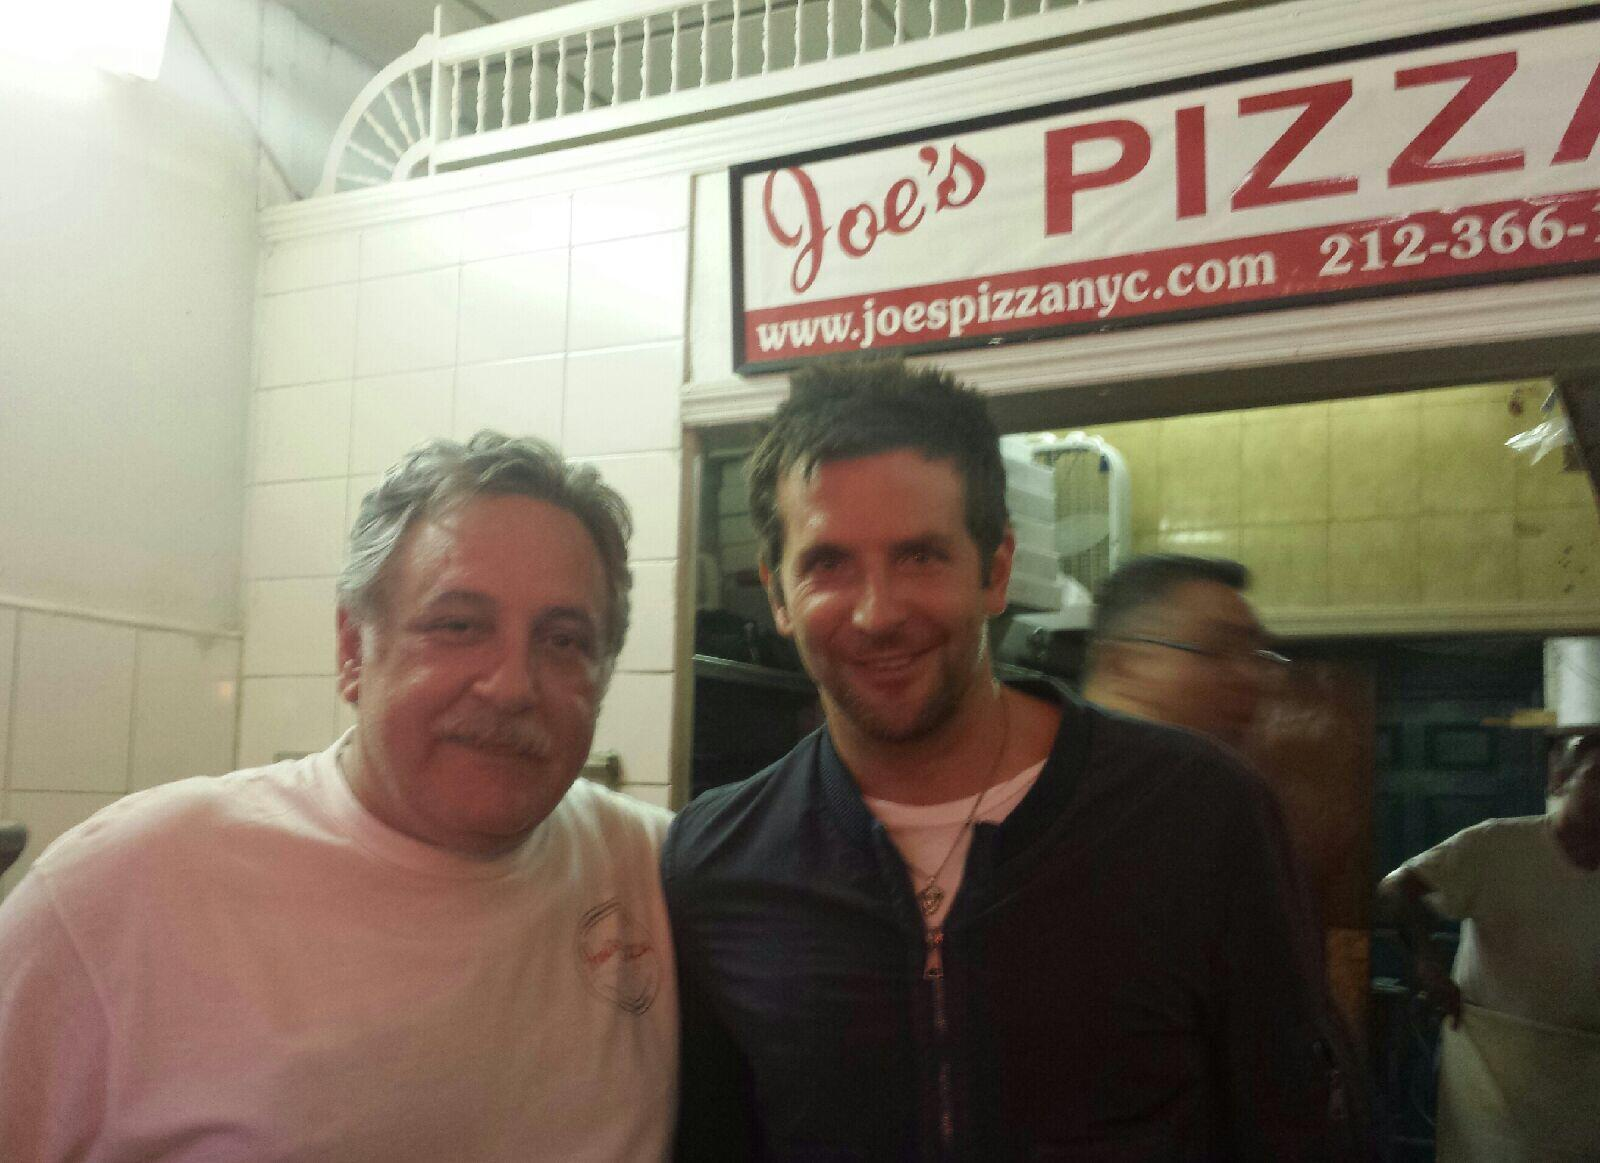 #BradleyCooper knows grabbing a slice at Joe's after a night on the town may help avert a hangover. http://t.co/RS0QI1Ken7